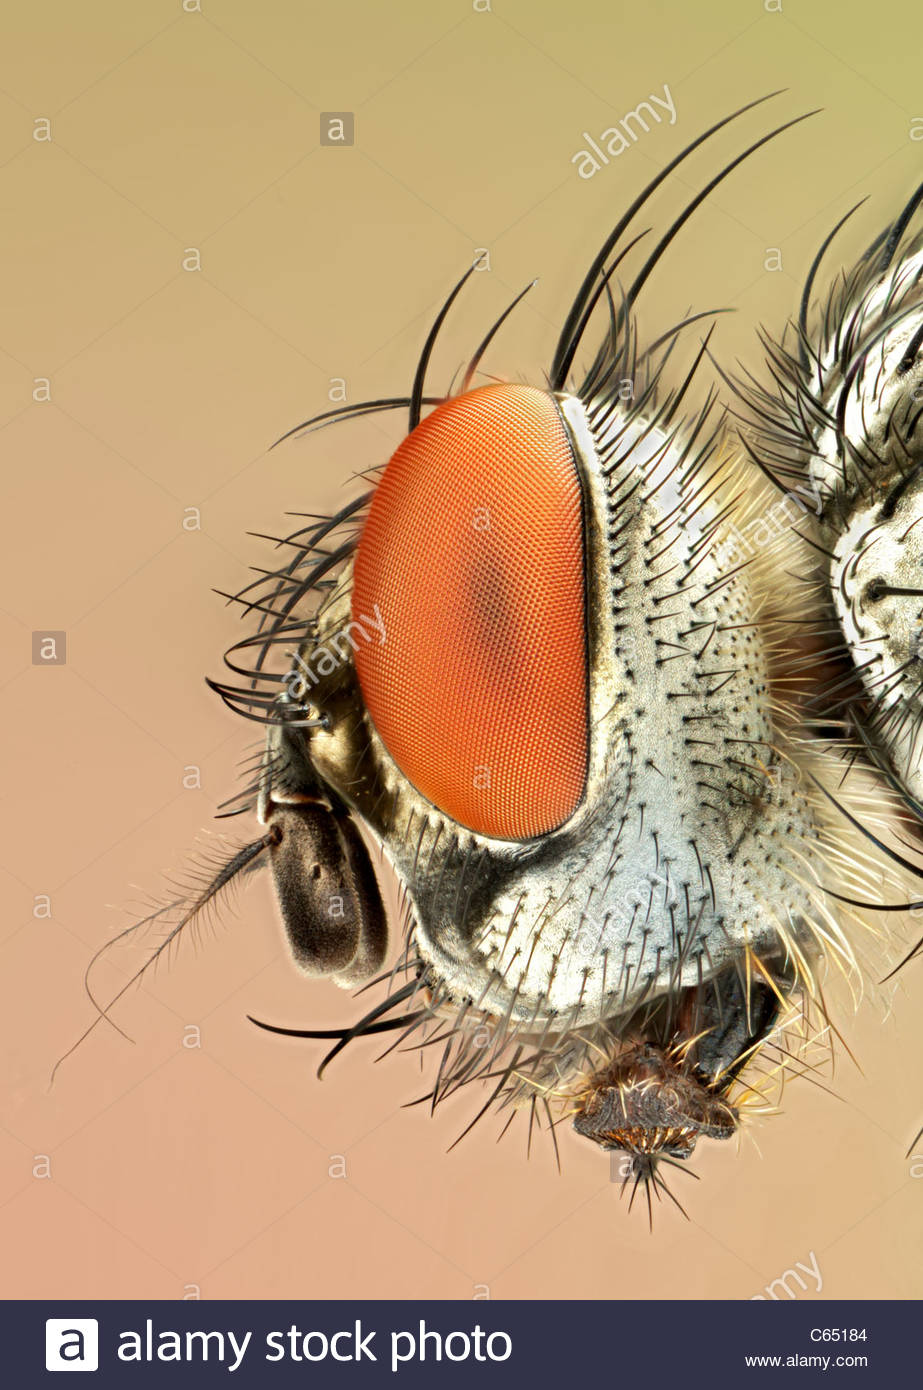 Flesh-fly (Scatophaga sp.), close-up of head. - Stock Image